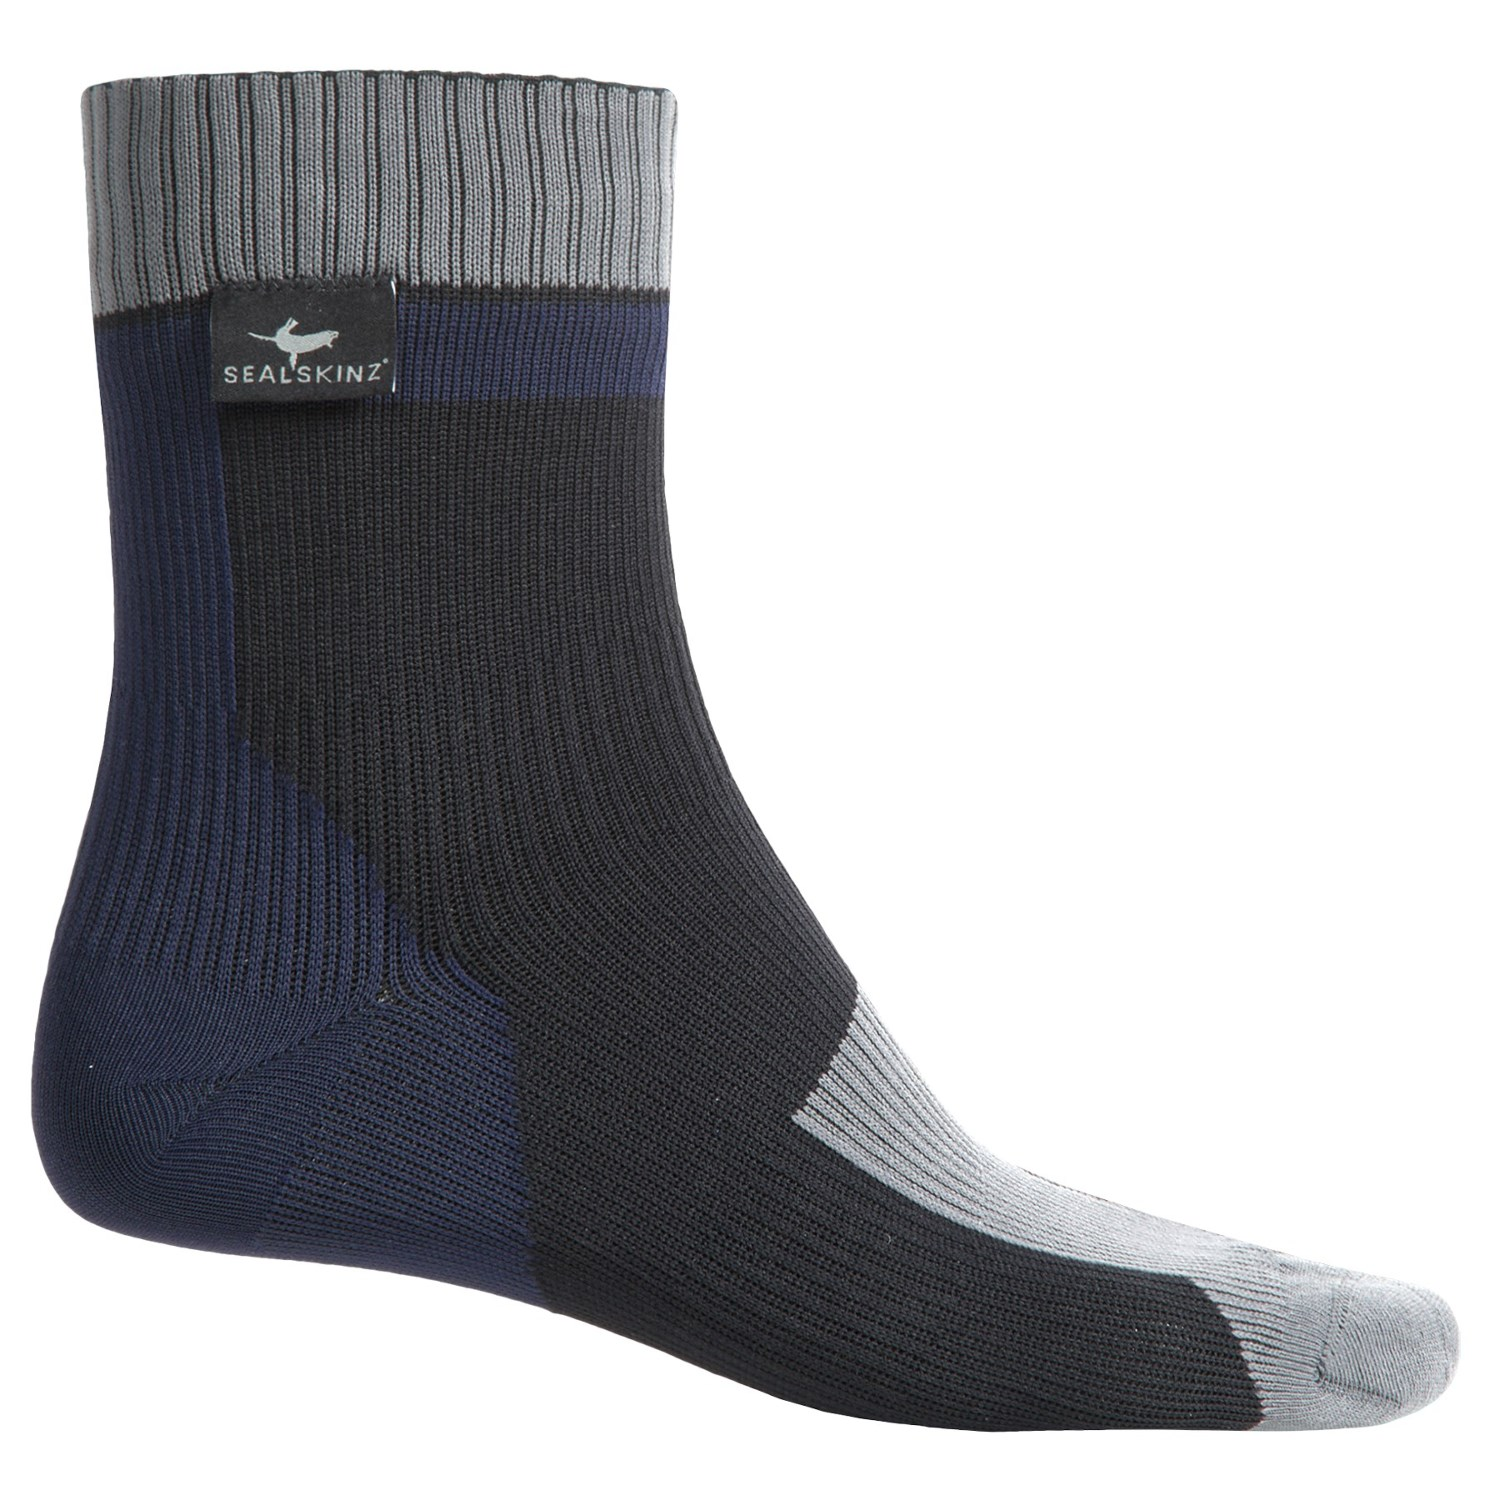 Designed with a seamless toe, ultra-soft cotton, and honeycomb arch support. Bombas are the most comfortable socks in the history of feet. Shop no-show, ankle, quarter, and calf.